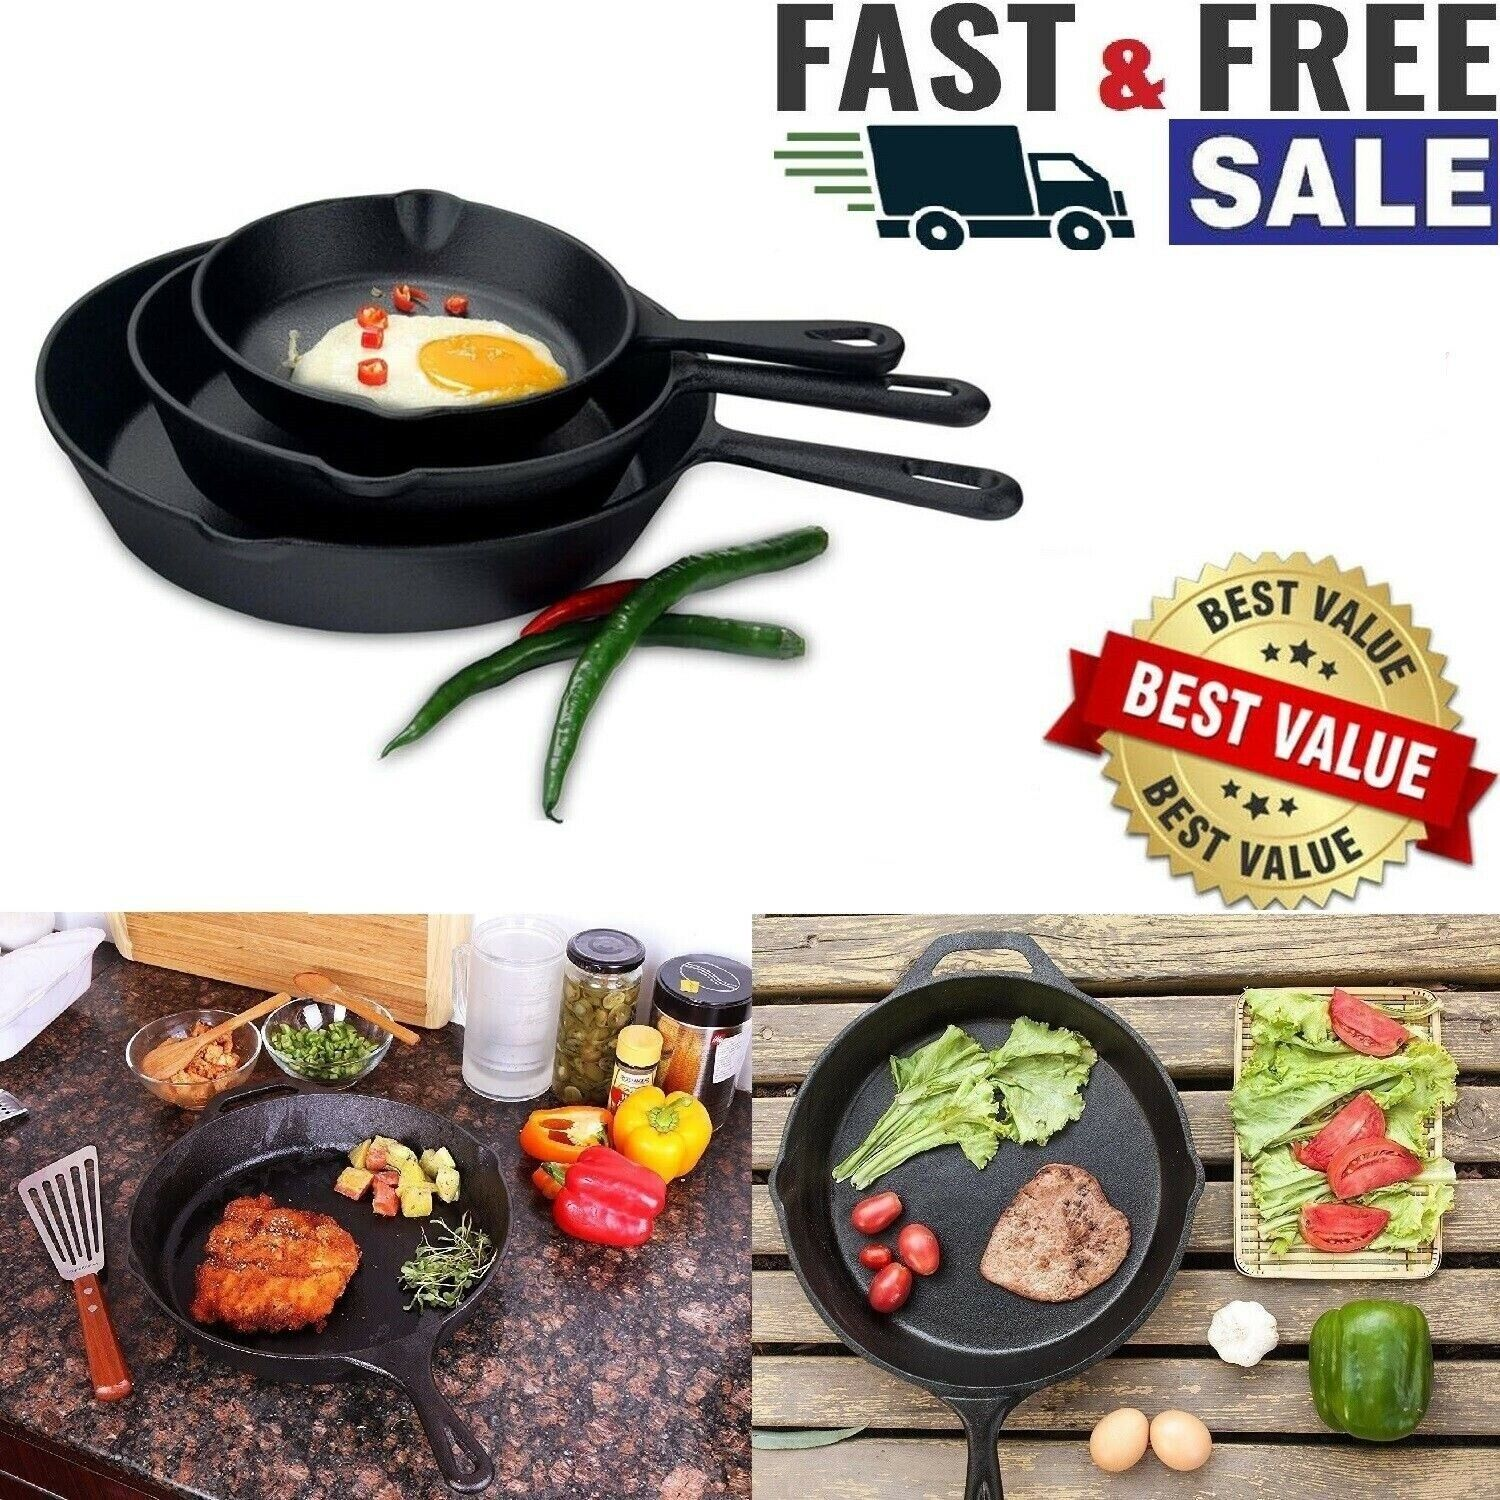 3 CAST IRON SKILLET Pre Seasoned 6 8 10 Inch Stove Oven Fry